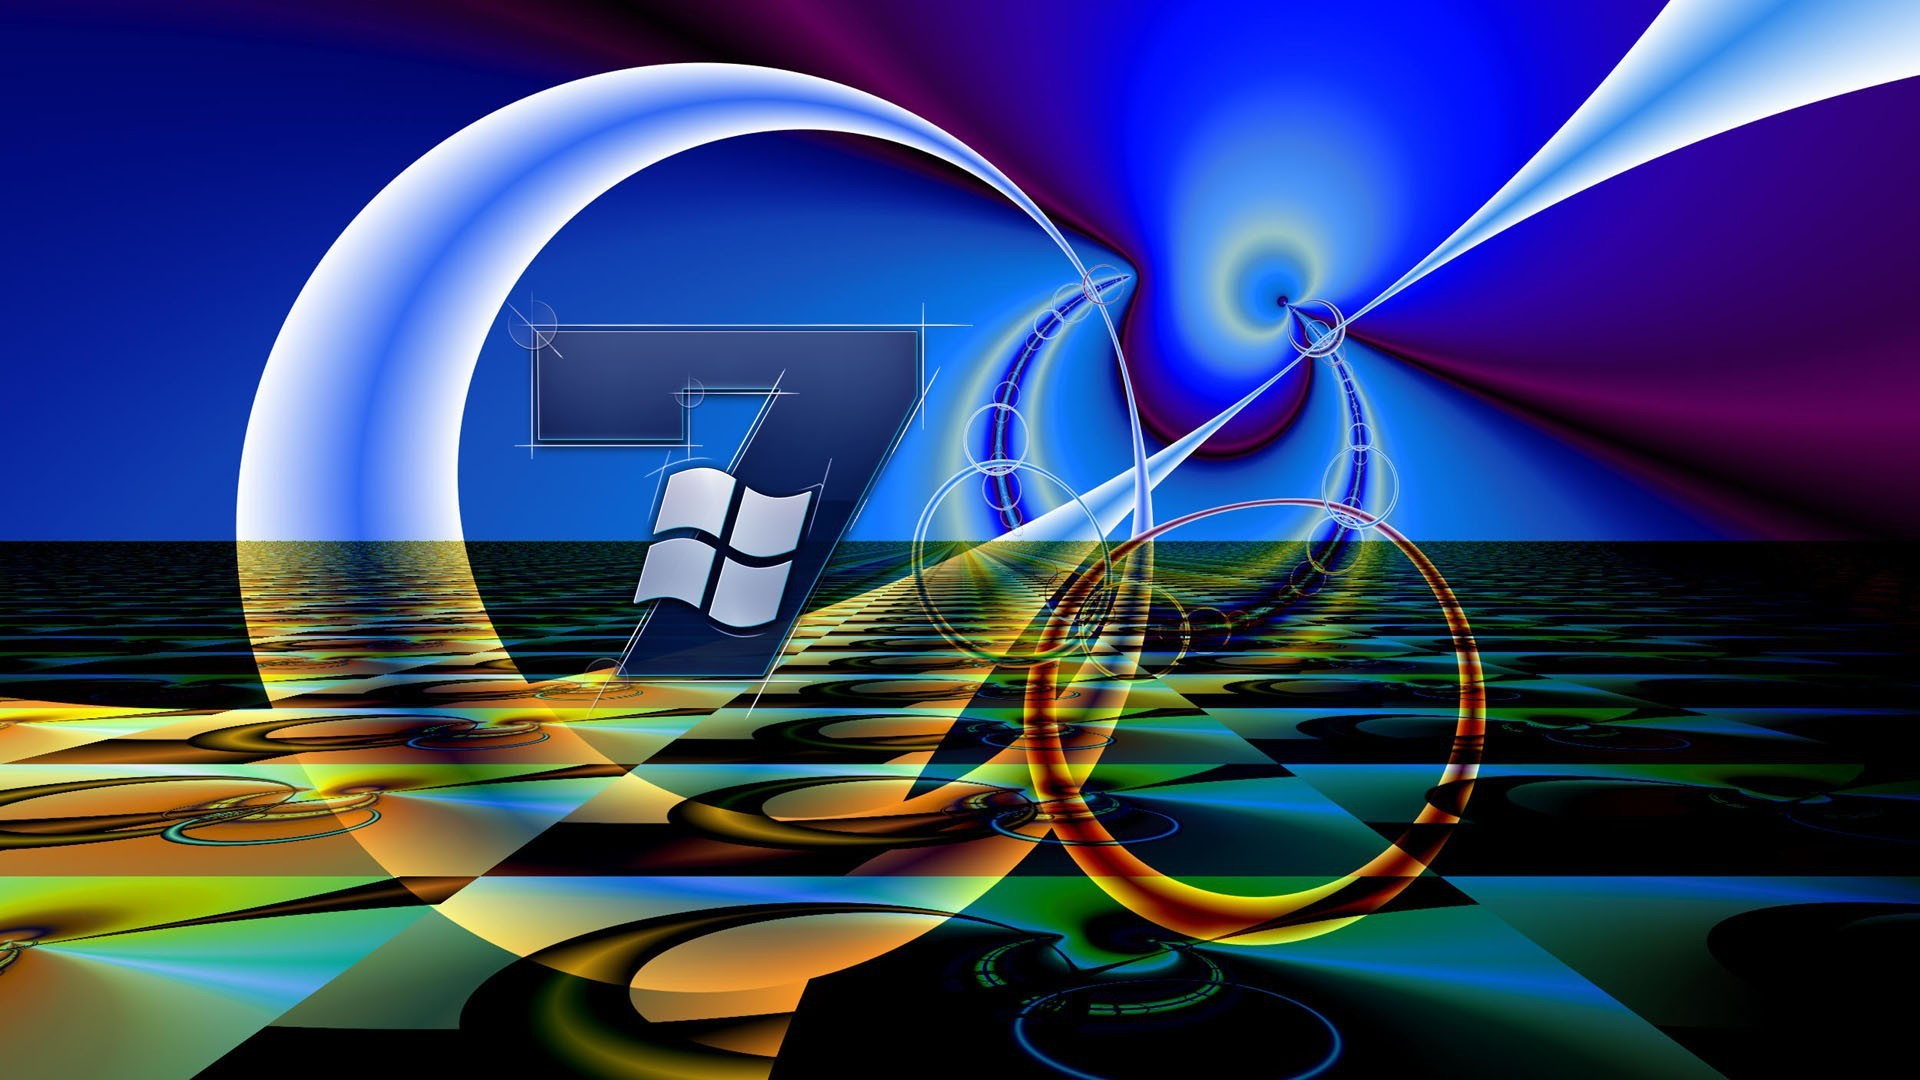 Windows 7 – Photo Wallpapers, Pictures For Windows 7